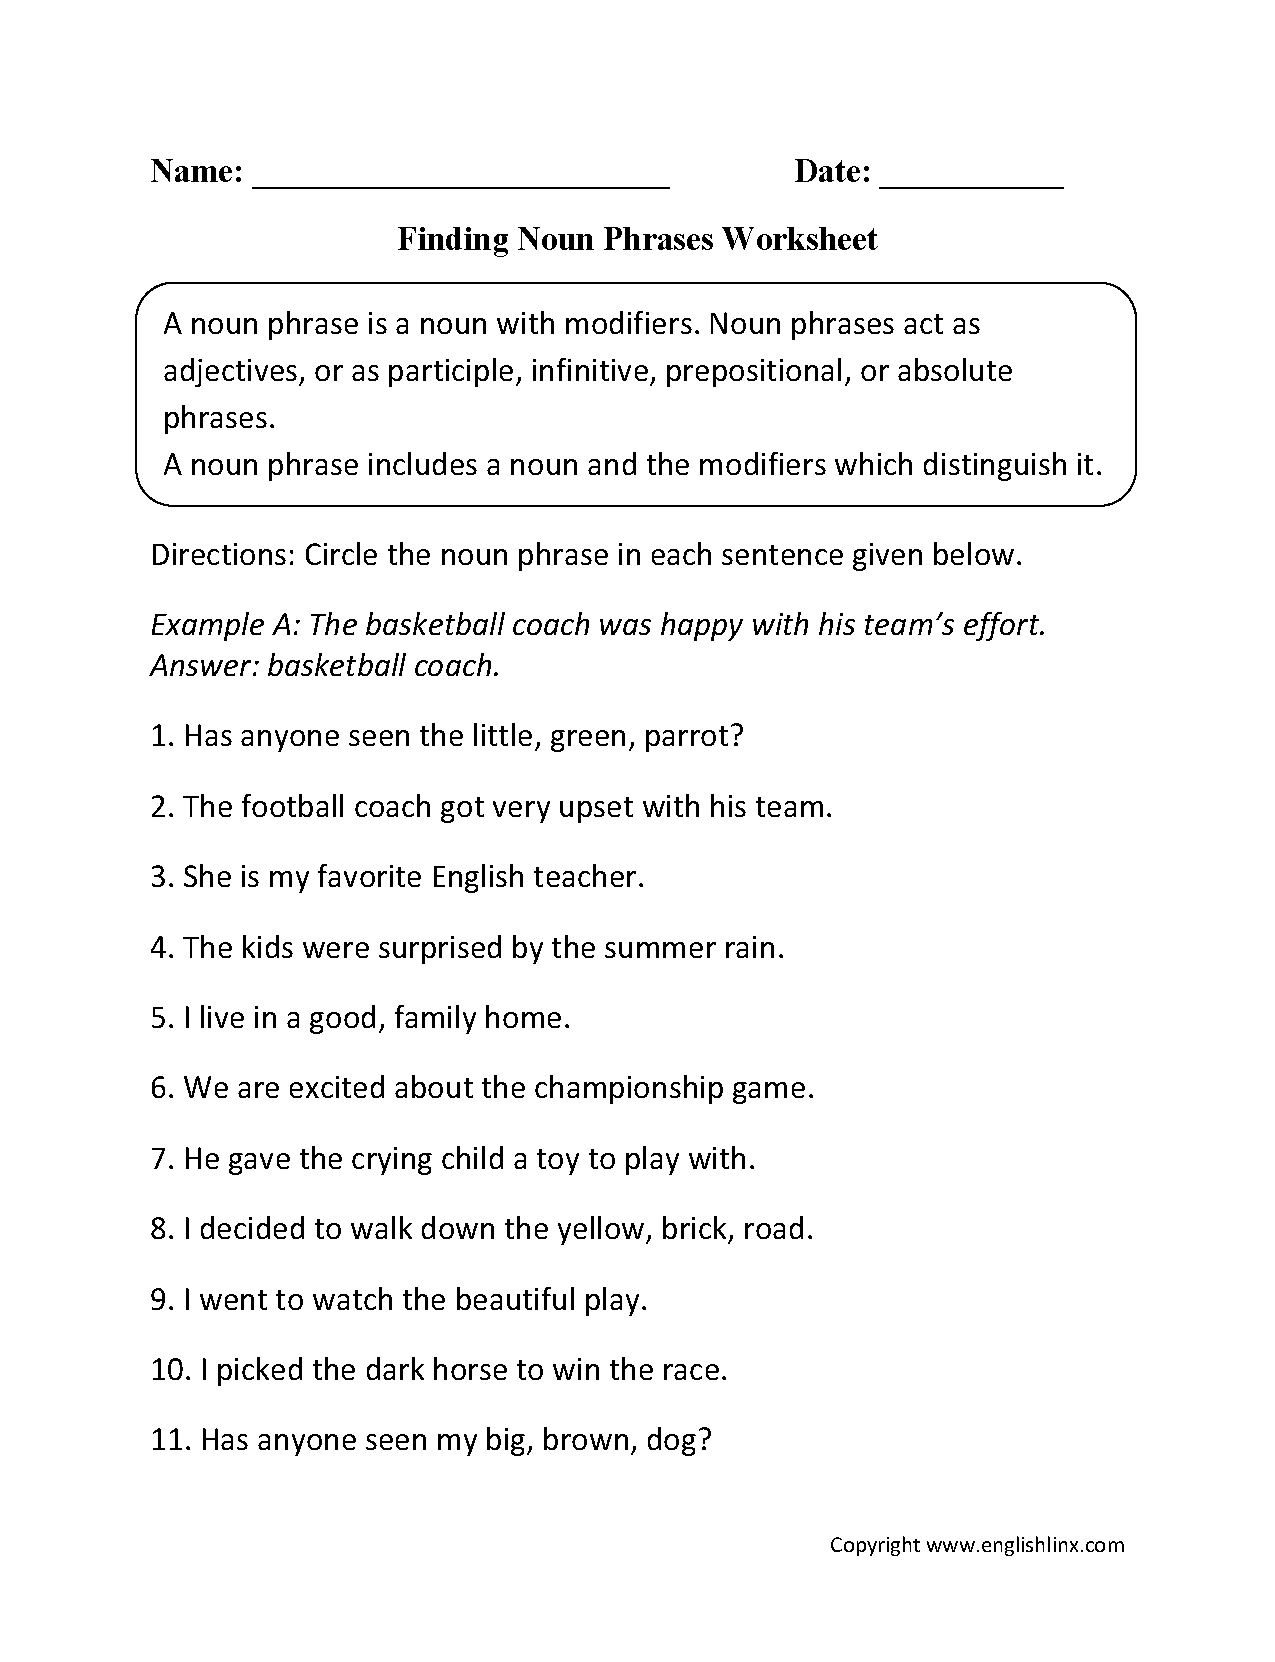 Worksheets Types Of Nouns Worksheet englishlinx com nouns worksheets noun phrases worksheets